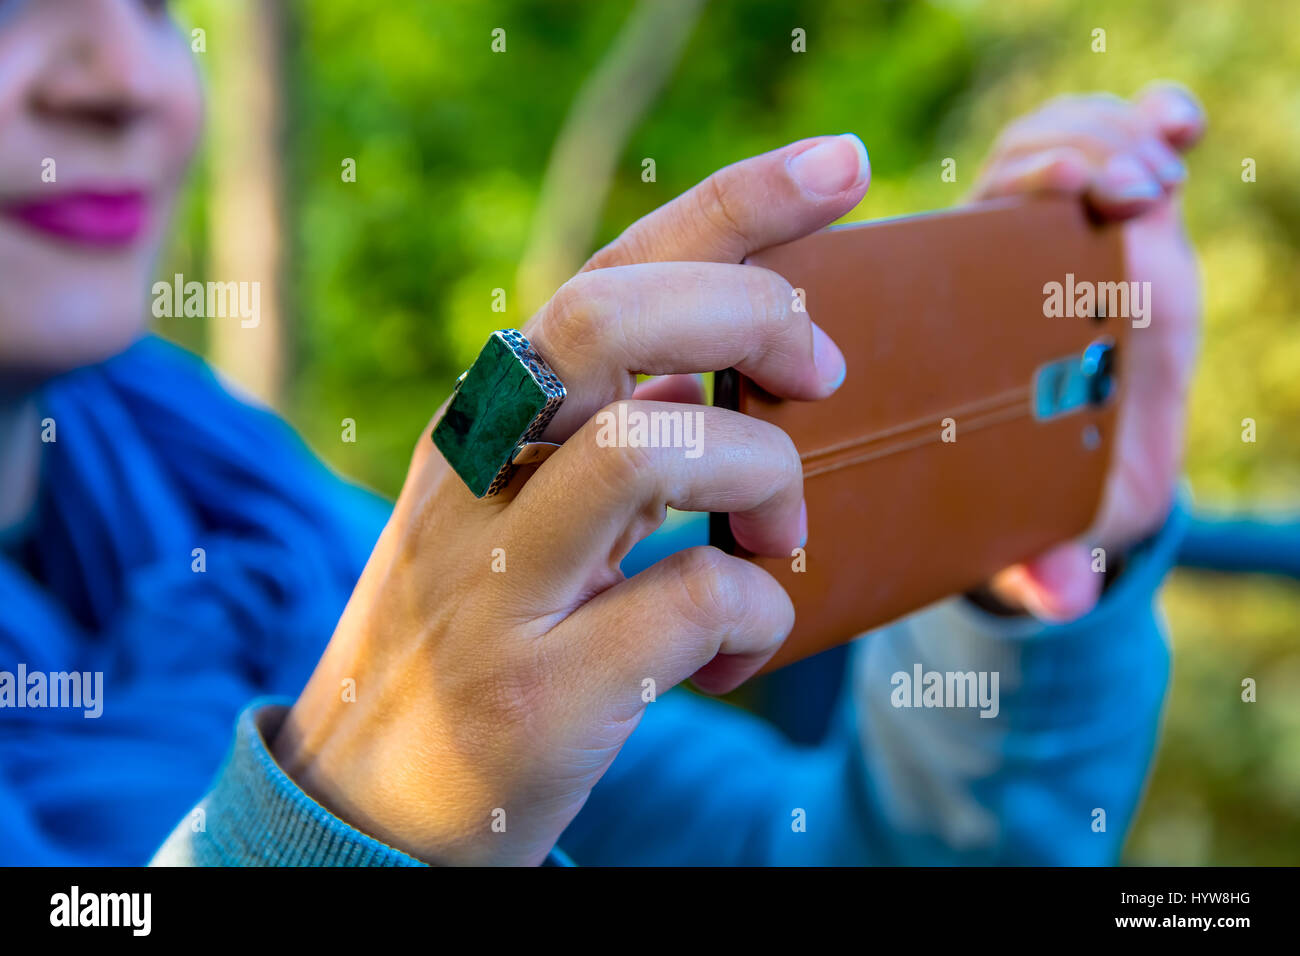 Close Up View of Woman Taking a Photograph with a Cellphone - Stock Image